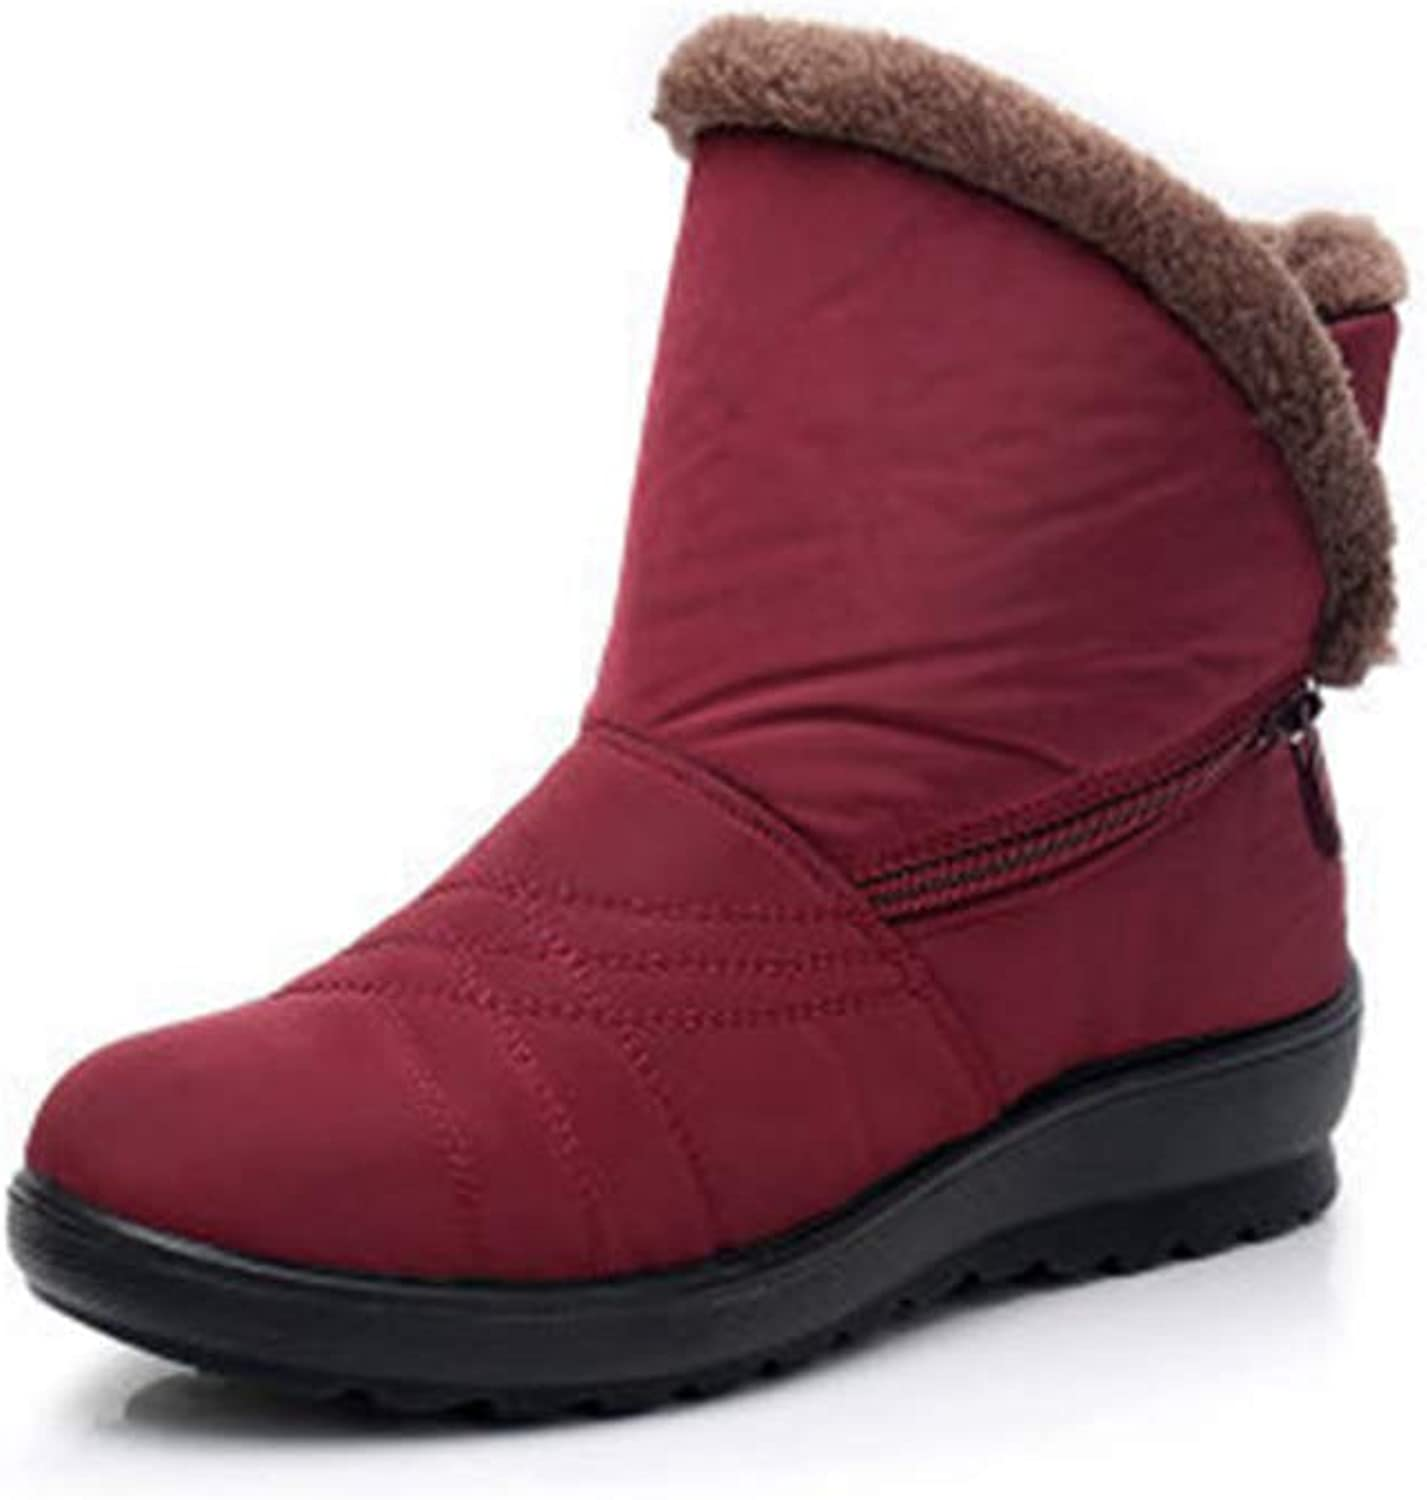 SENERY Women Winter Ankle Boots Flat Comfortable Waterproof Non-Slip Elderly Casual Warm Soft Snow Booties